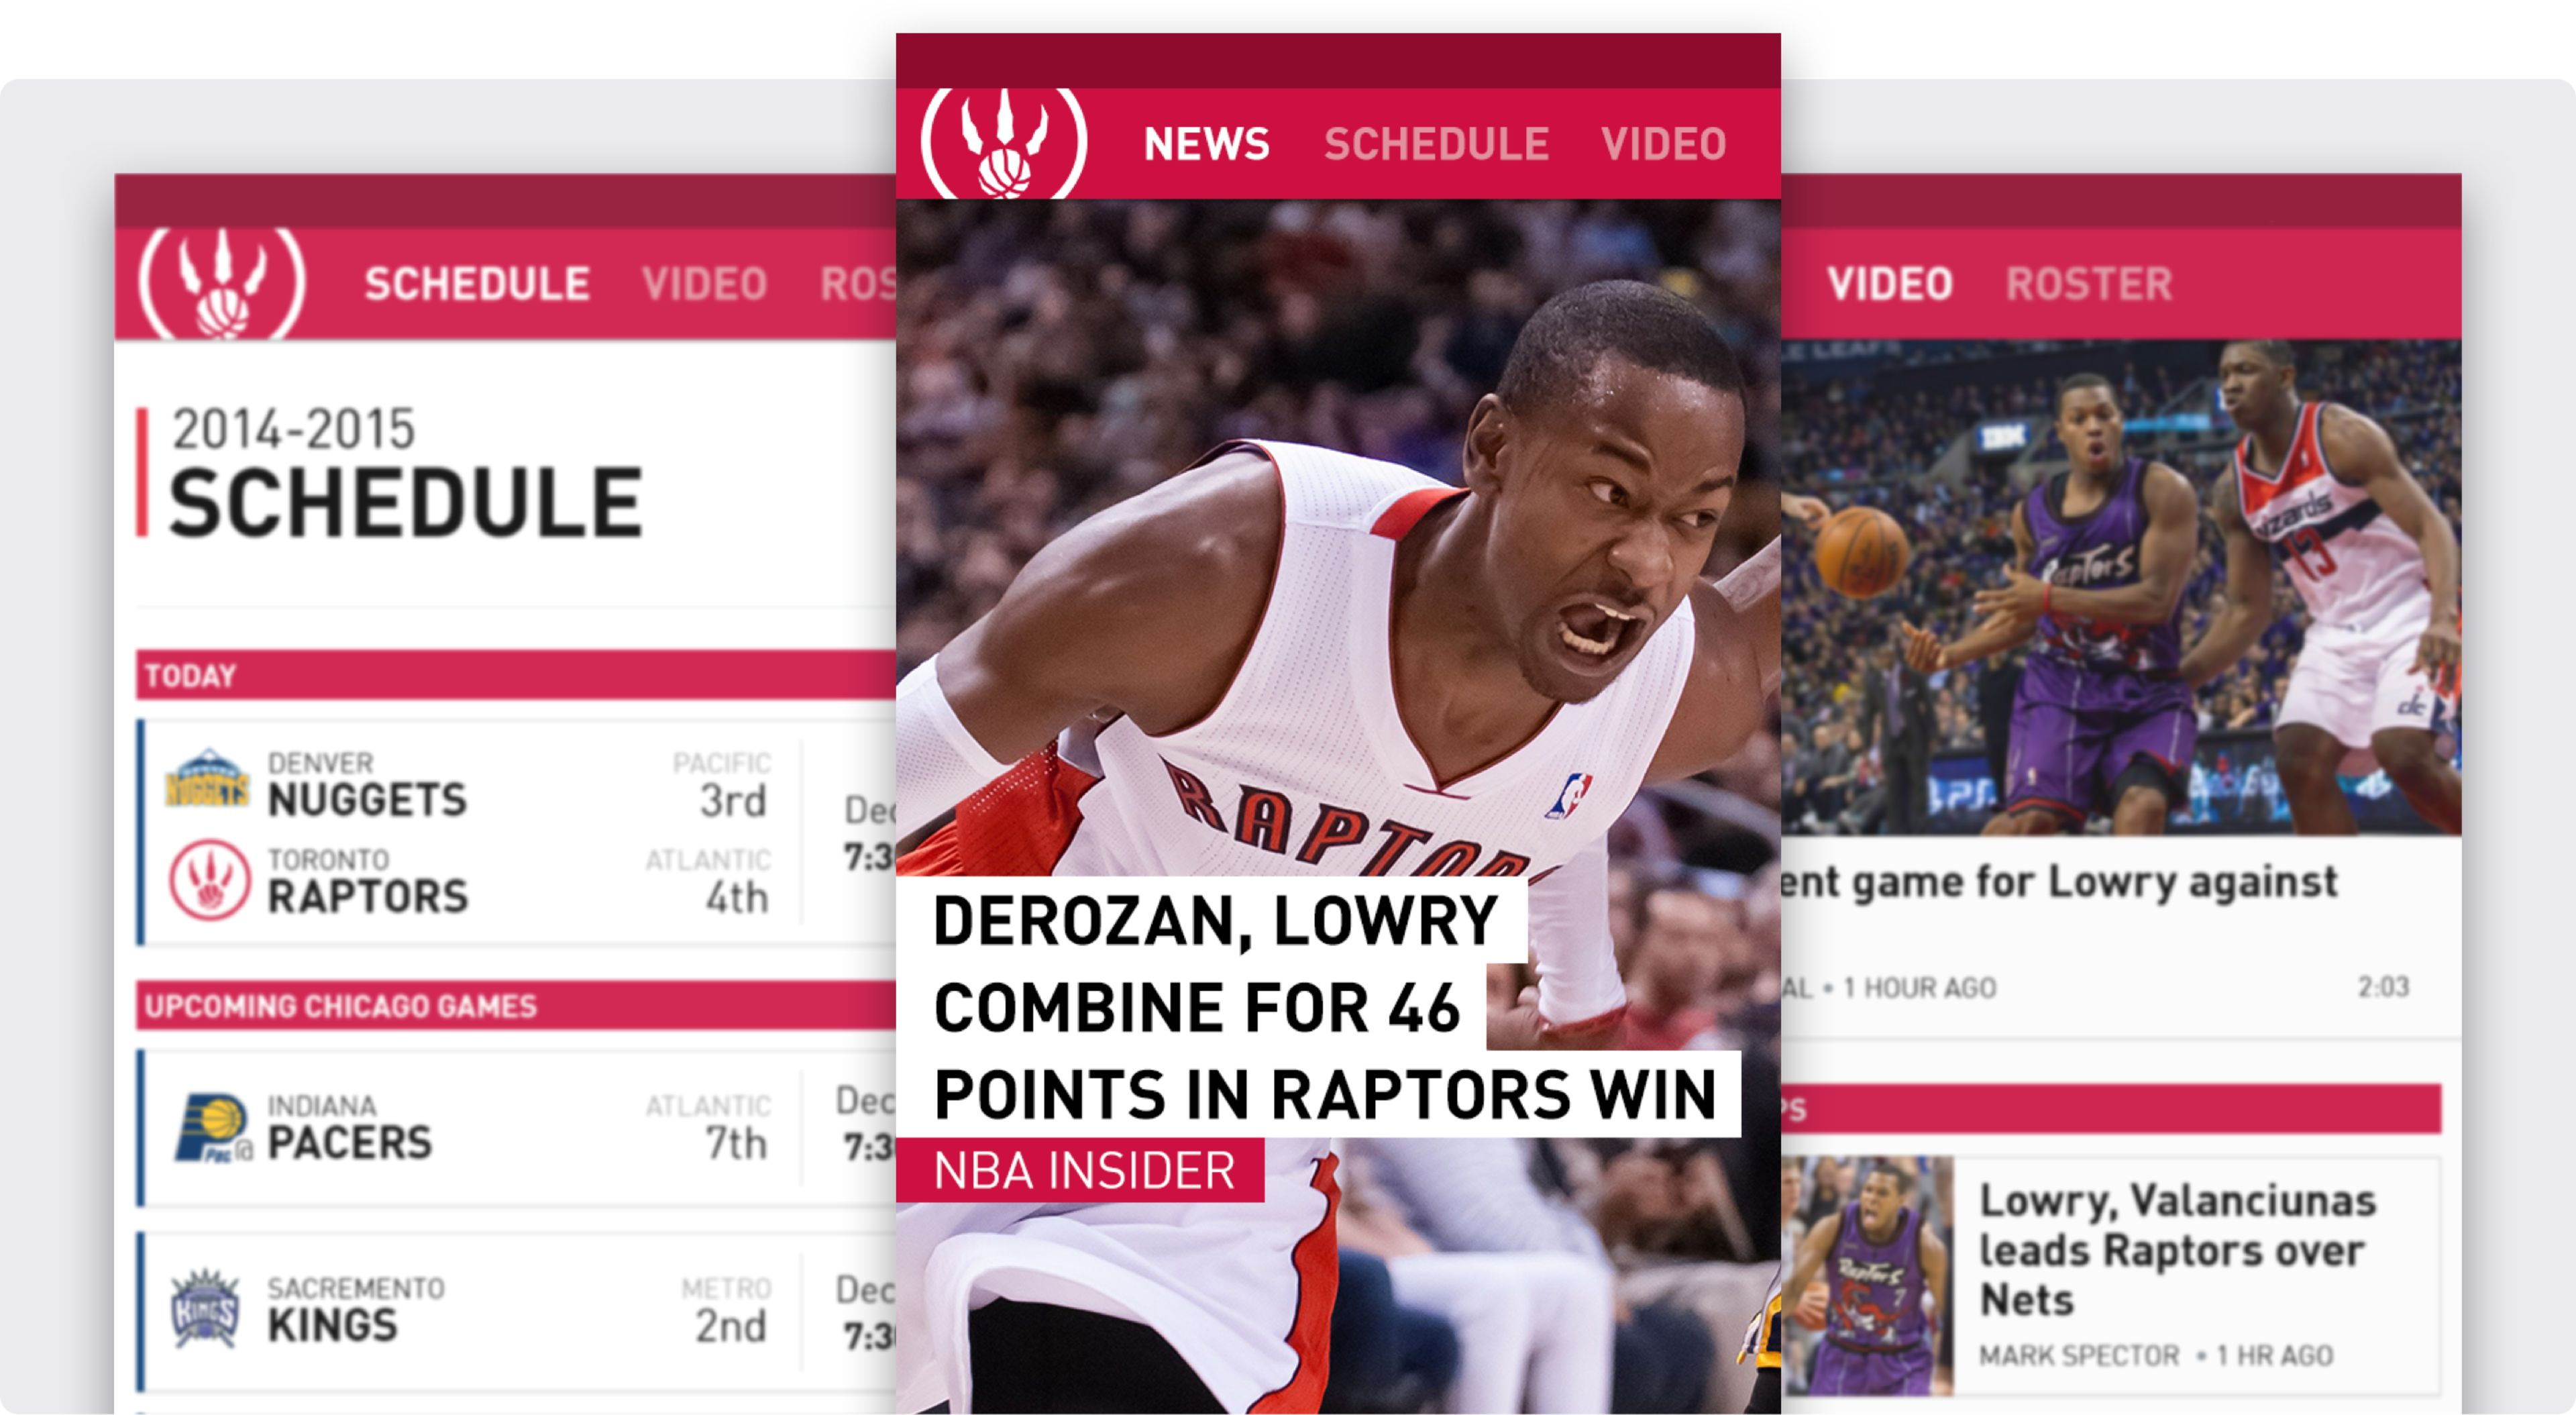 3 screens from the Sportsnet application in the Toronto Raptors section. Highlights, schedule and news.